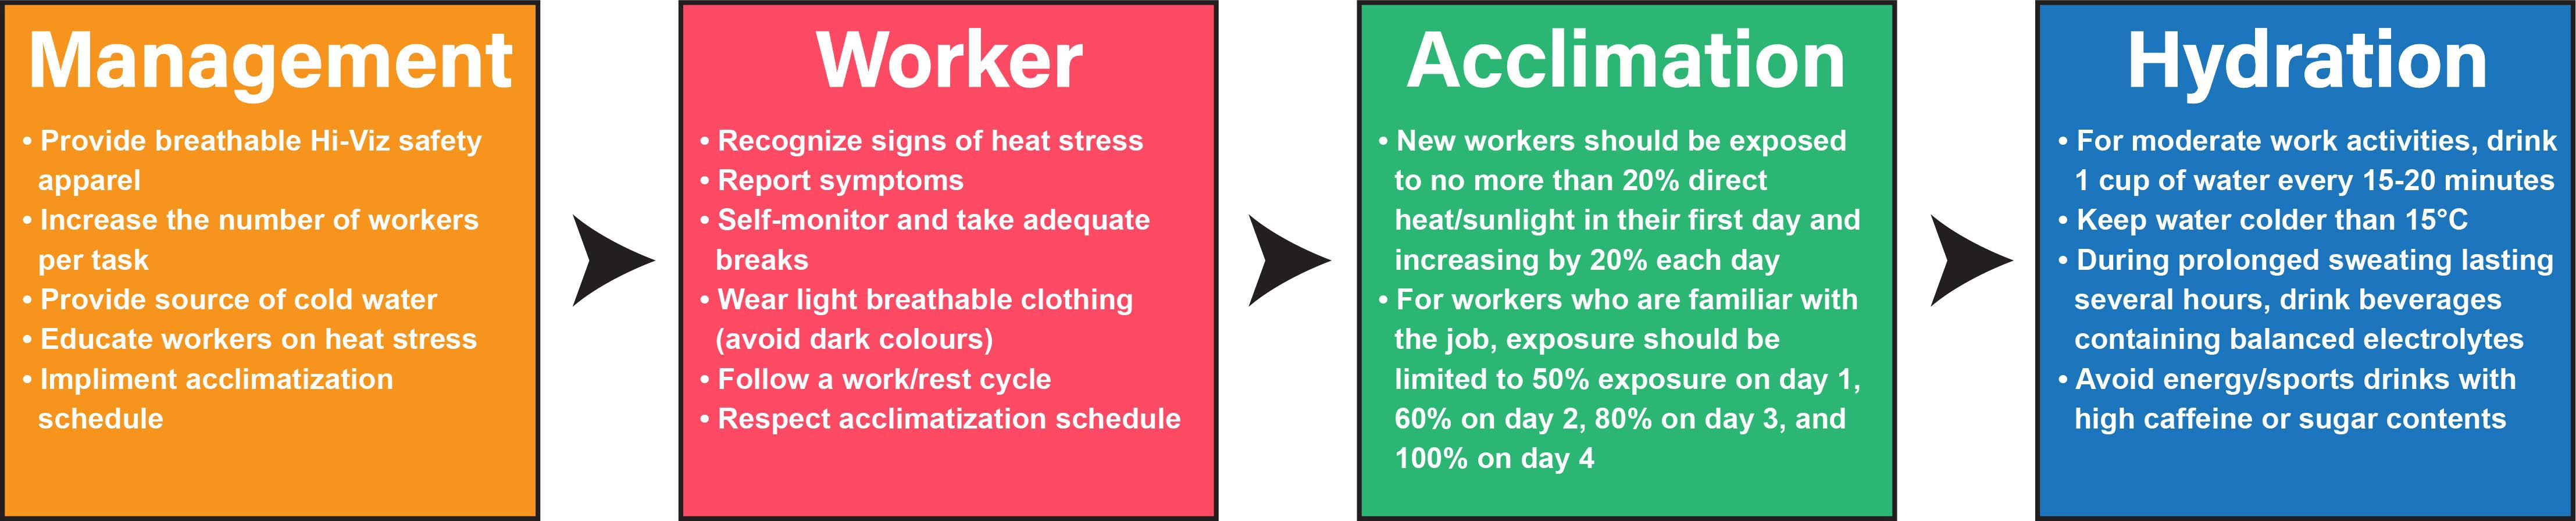 There are 4 controls that prevent heat stress: proper management of workforce, workers identifying signs of heat stress, proper acclimation, and hydration